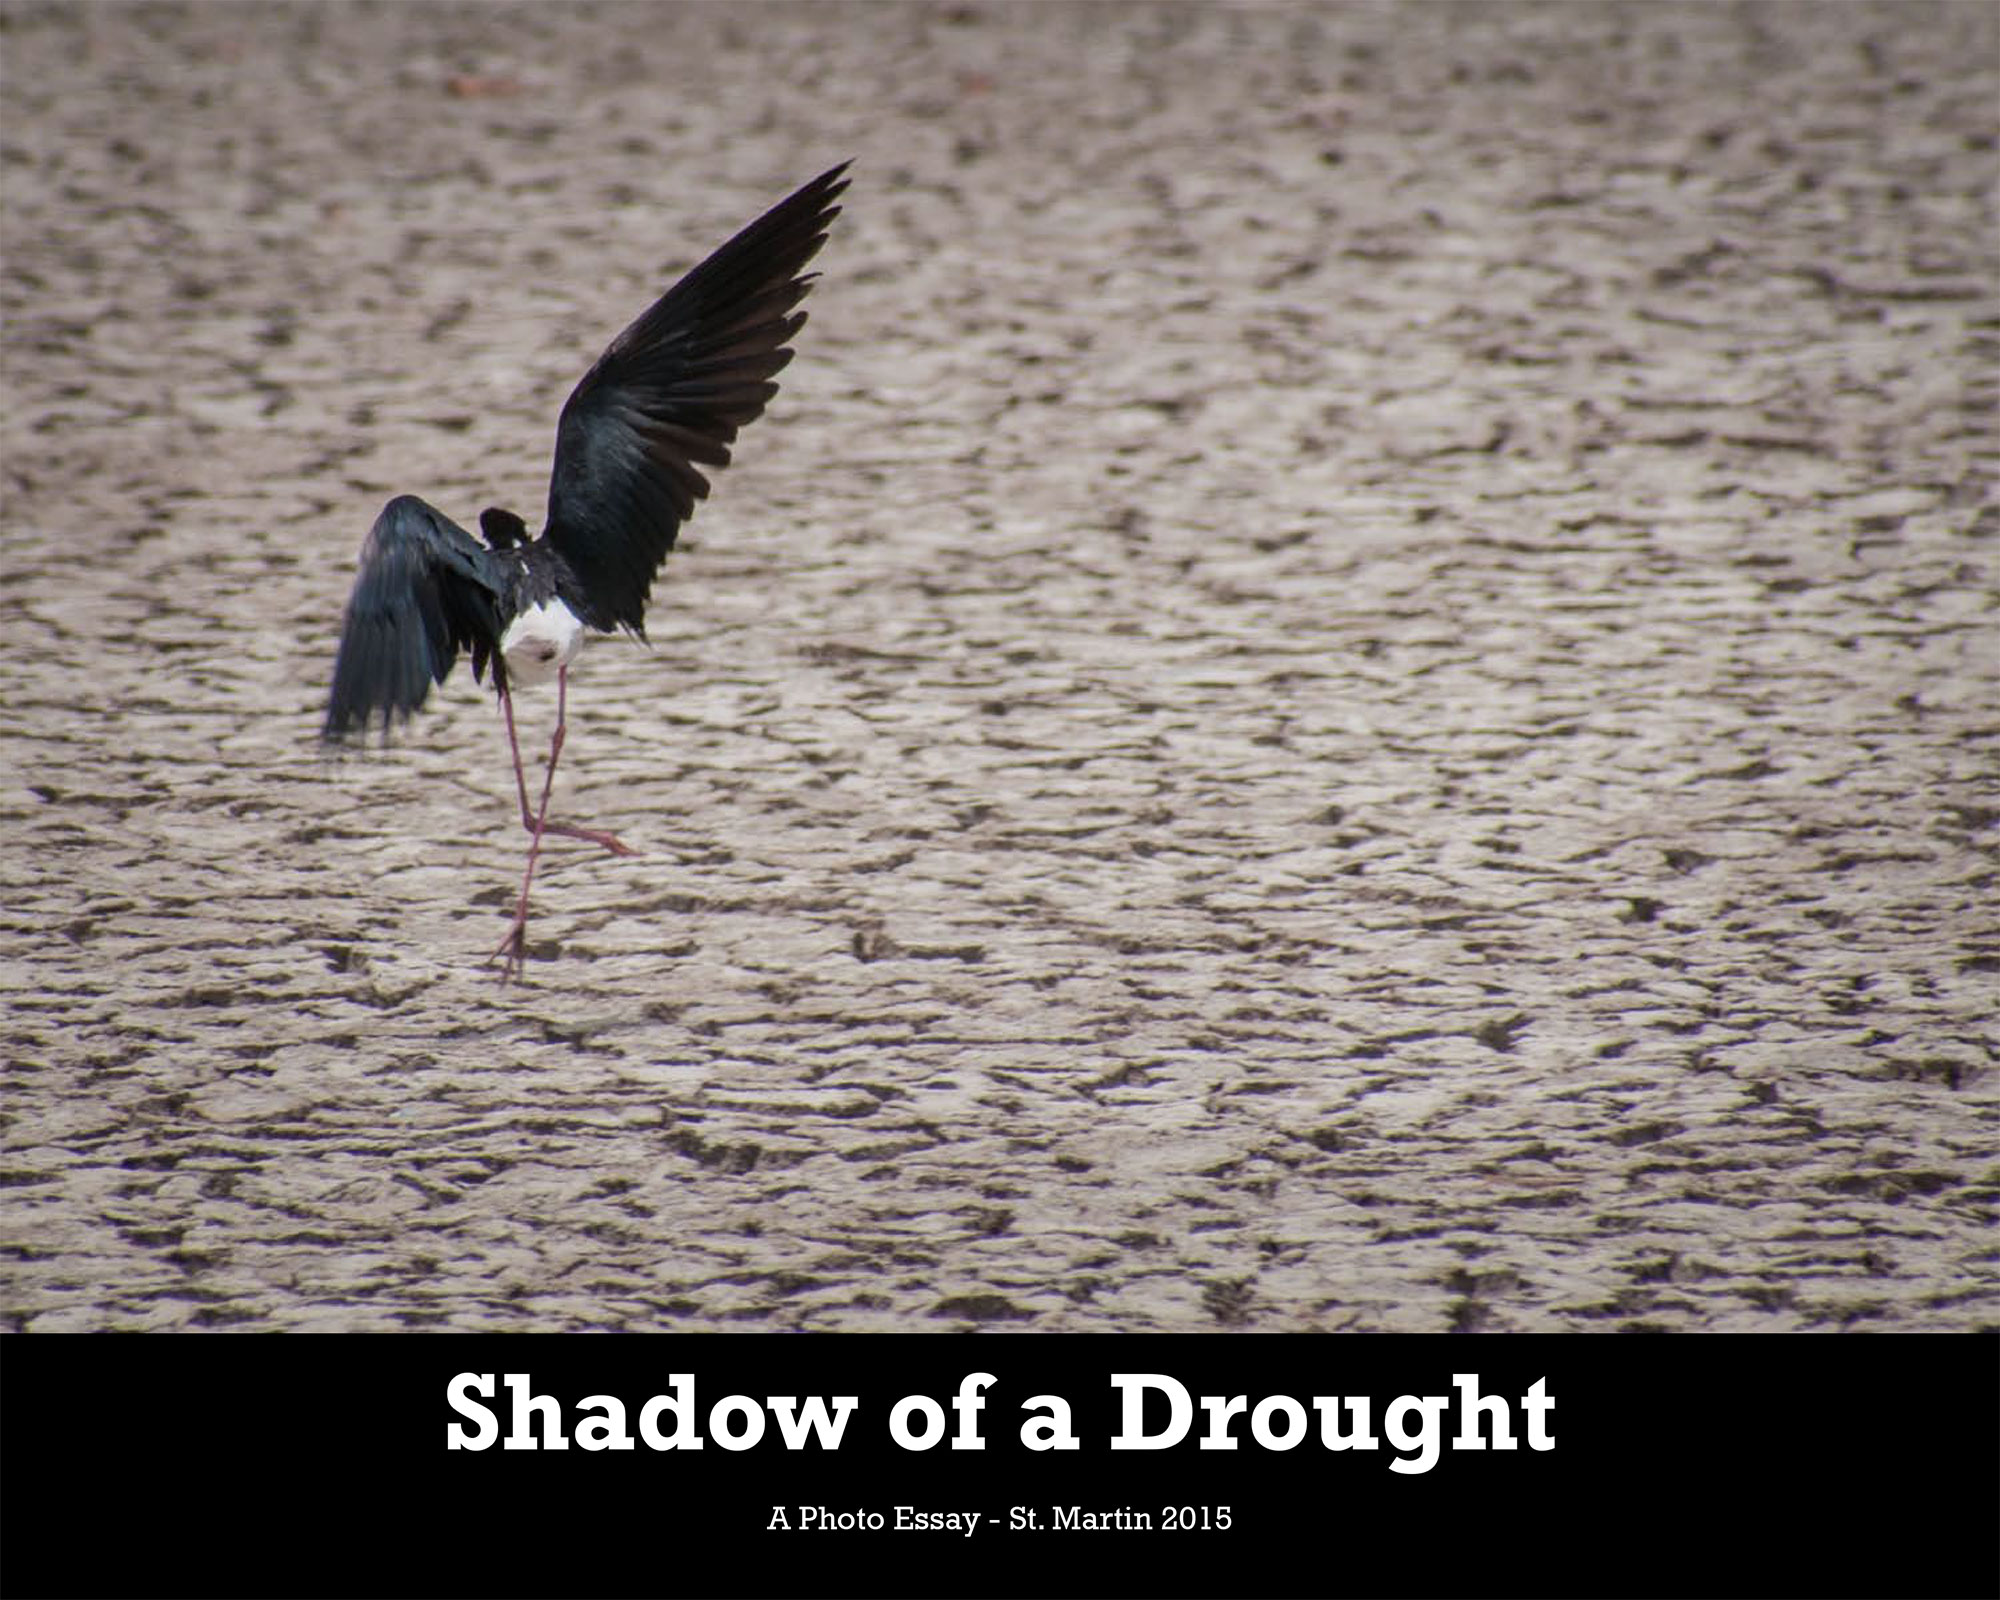 photo essay shadow of a drought birdscaribbean the photo essay shadow of a drought is available as a in both english